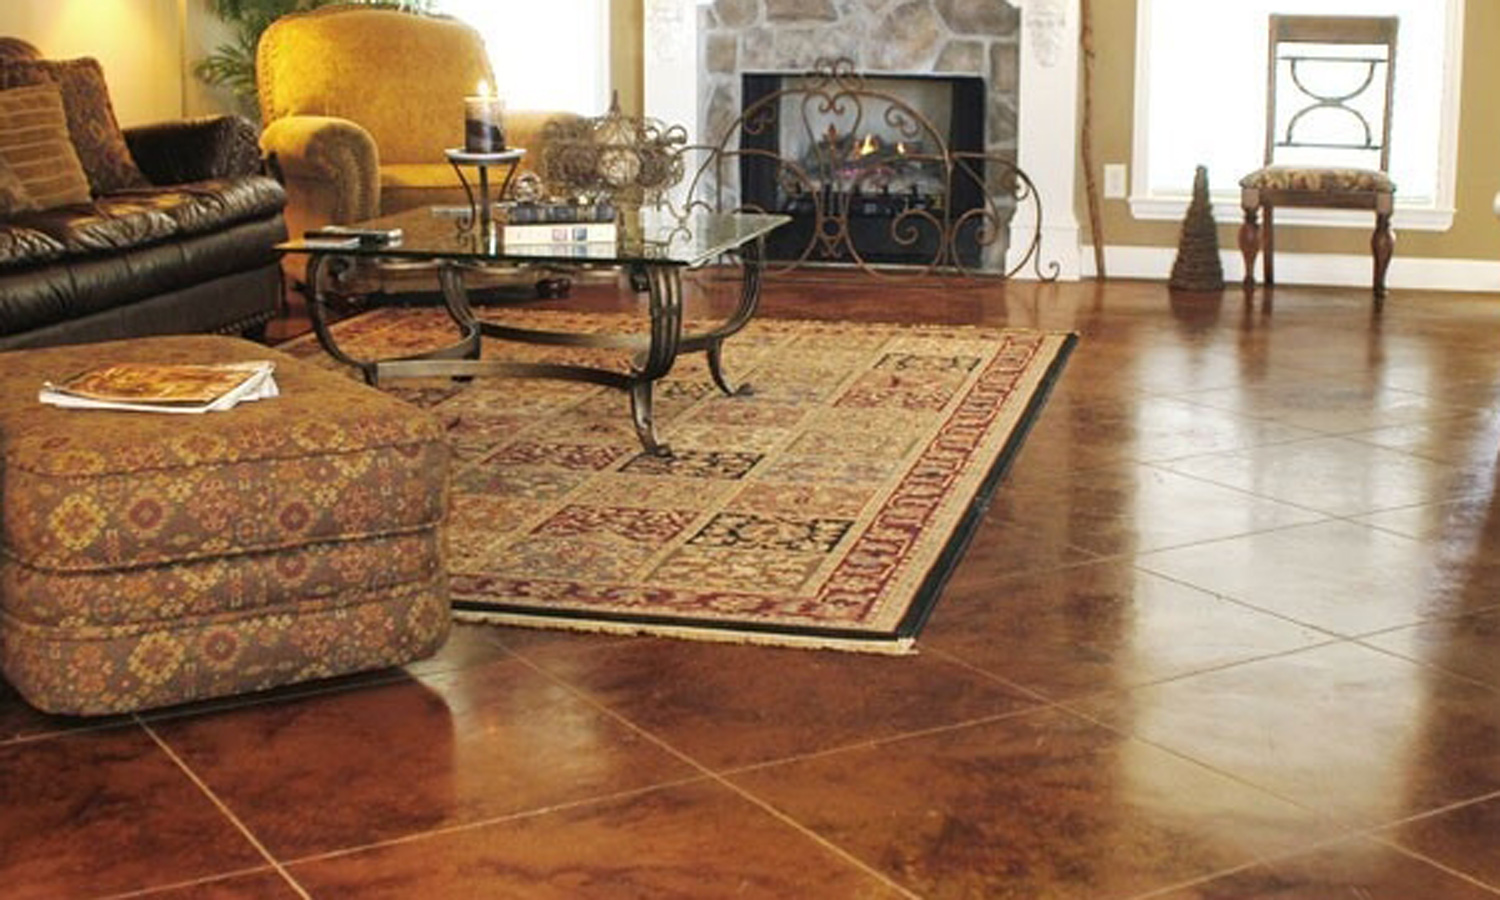 Flooring In House : Stained concrete floors for different home flooring ideas